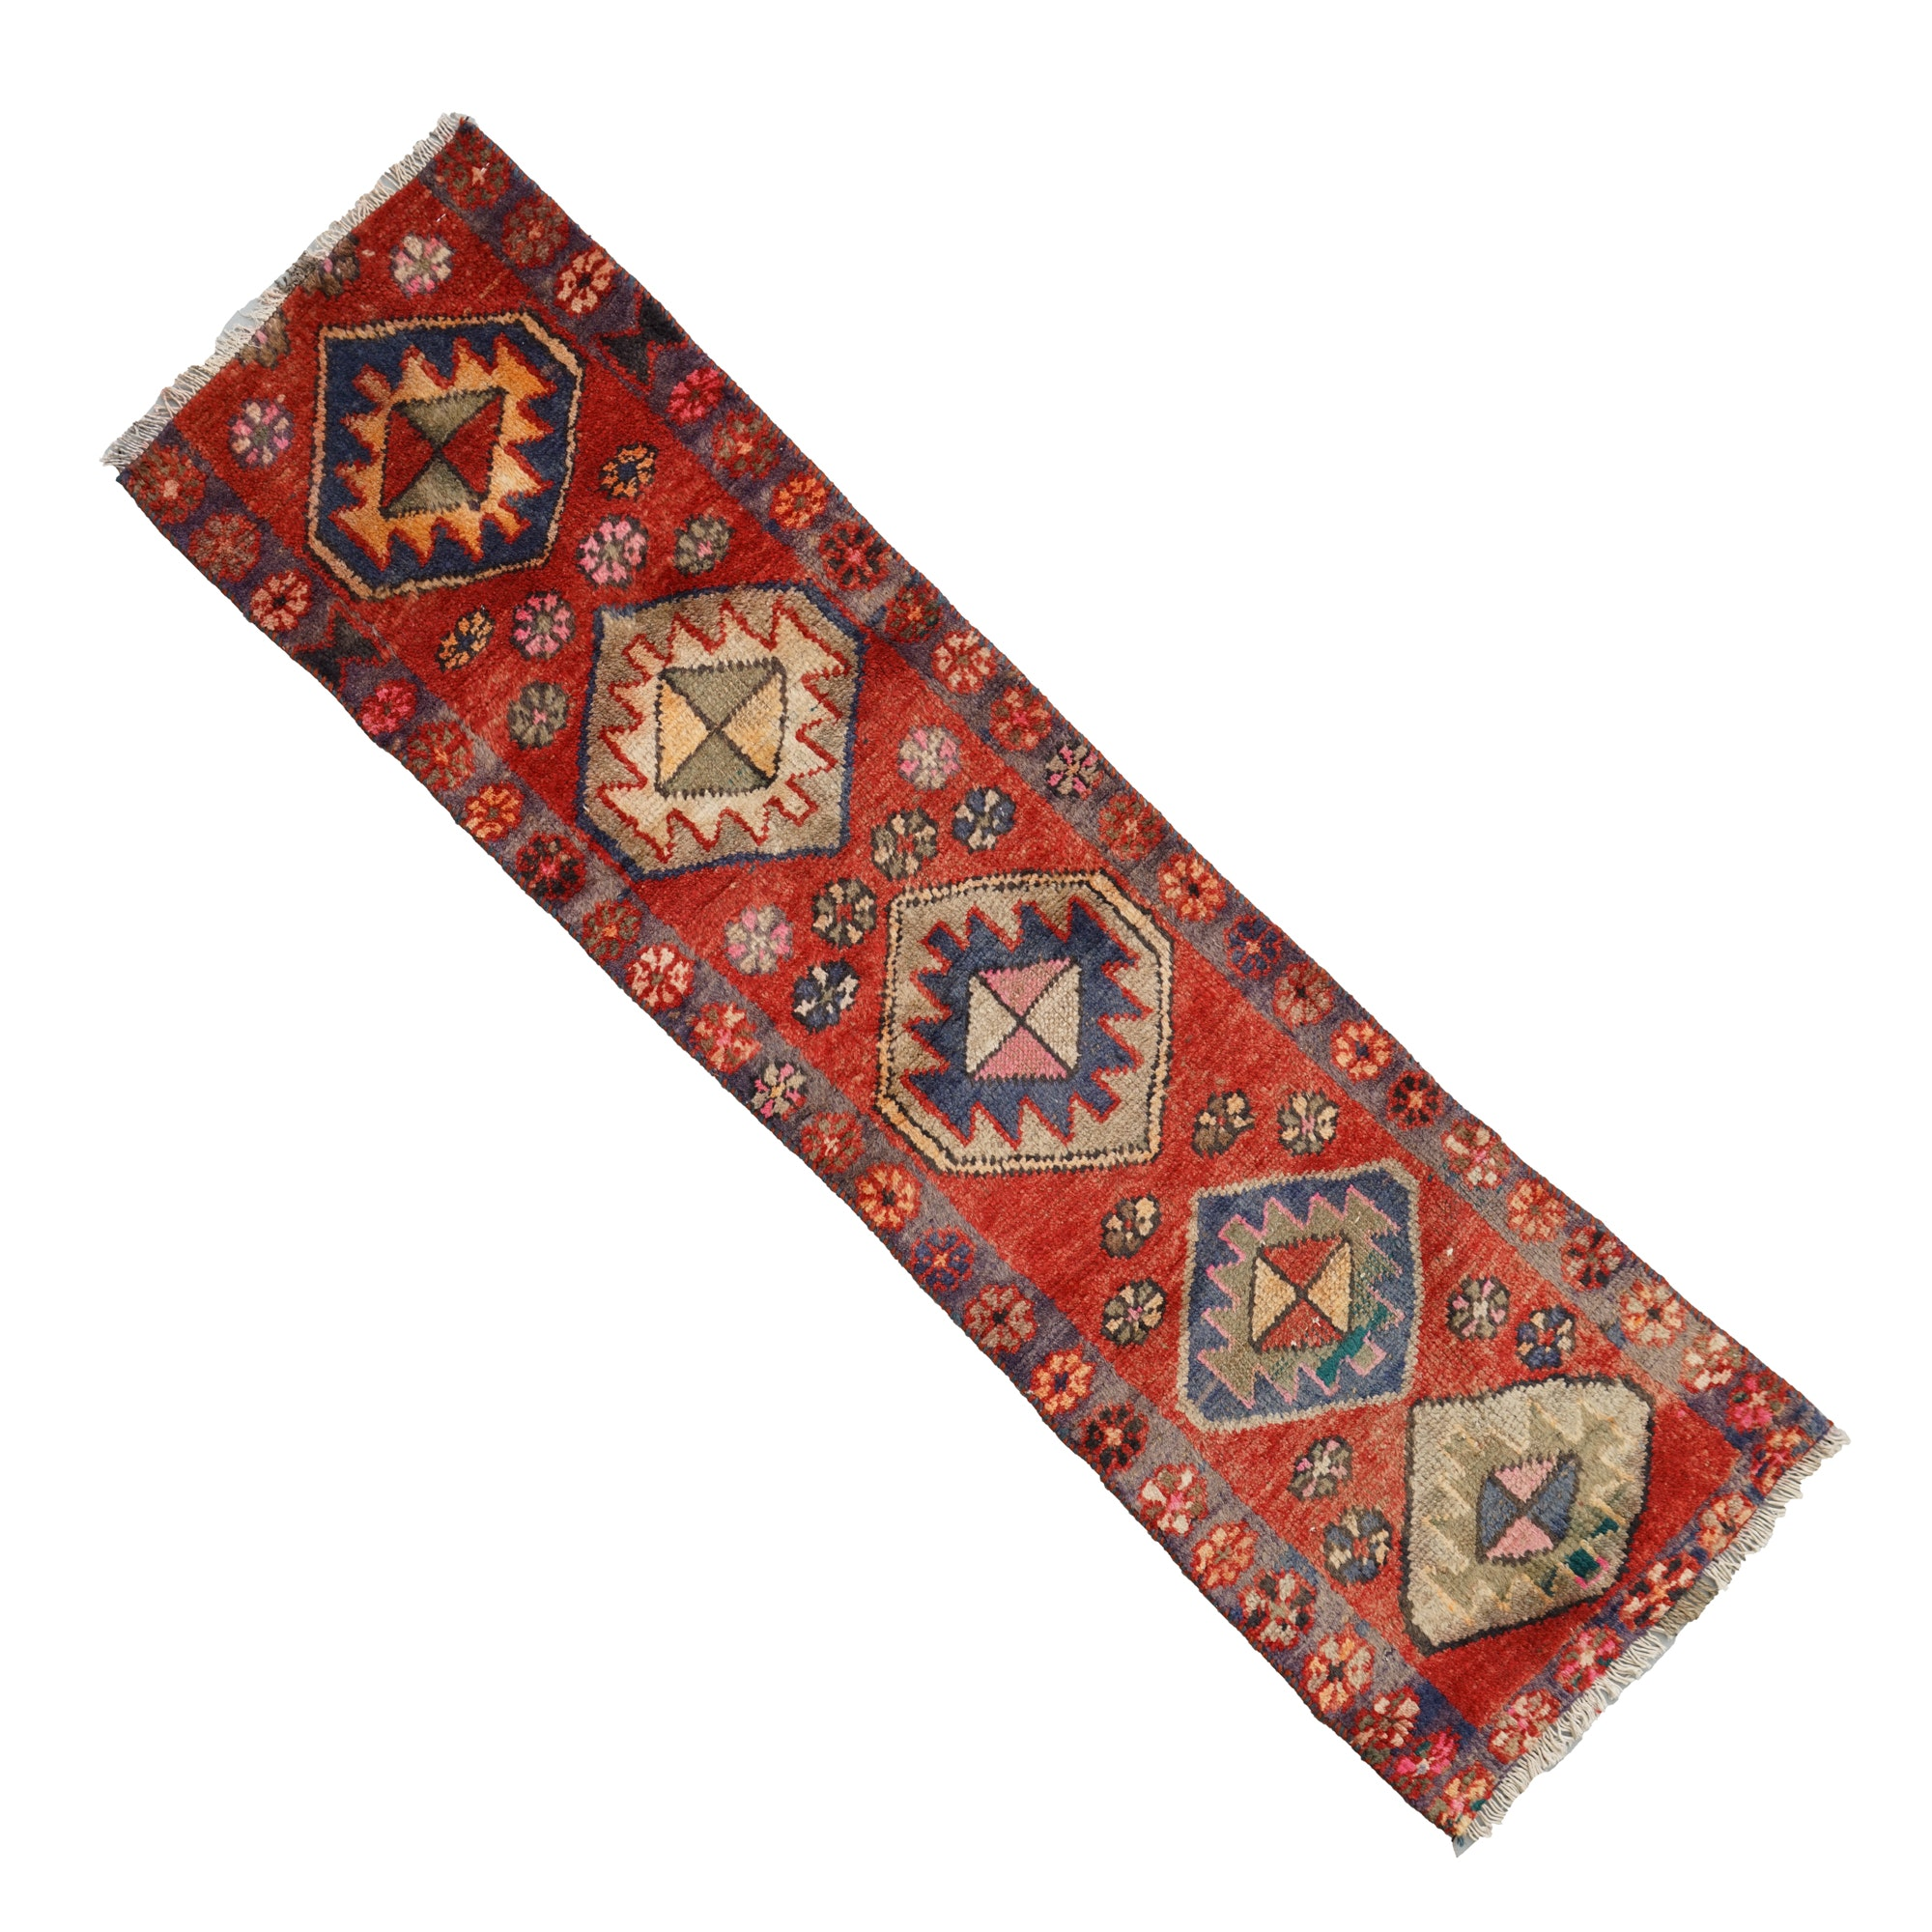 Vintage Hand-Knotted Kurdish Wool Carpet Runner